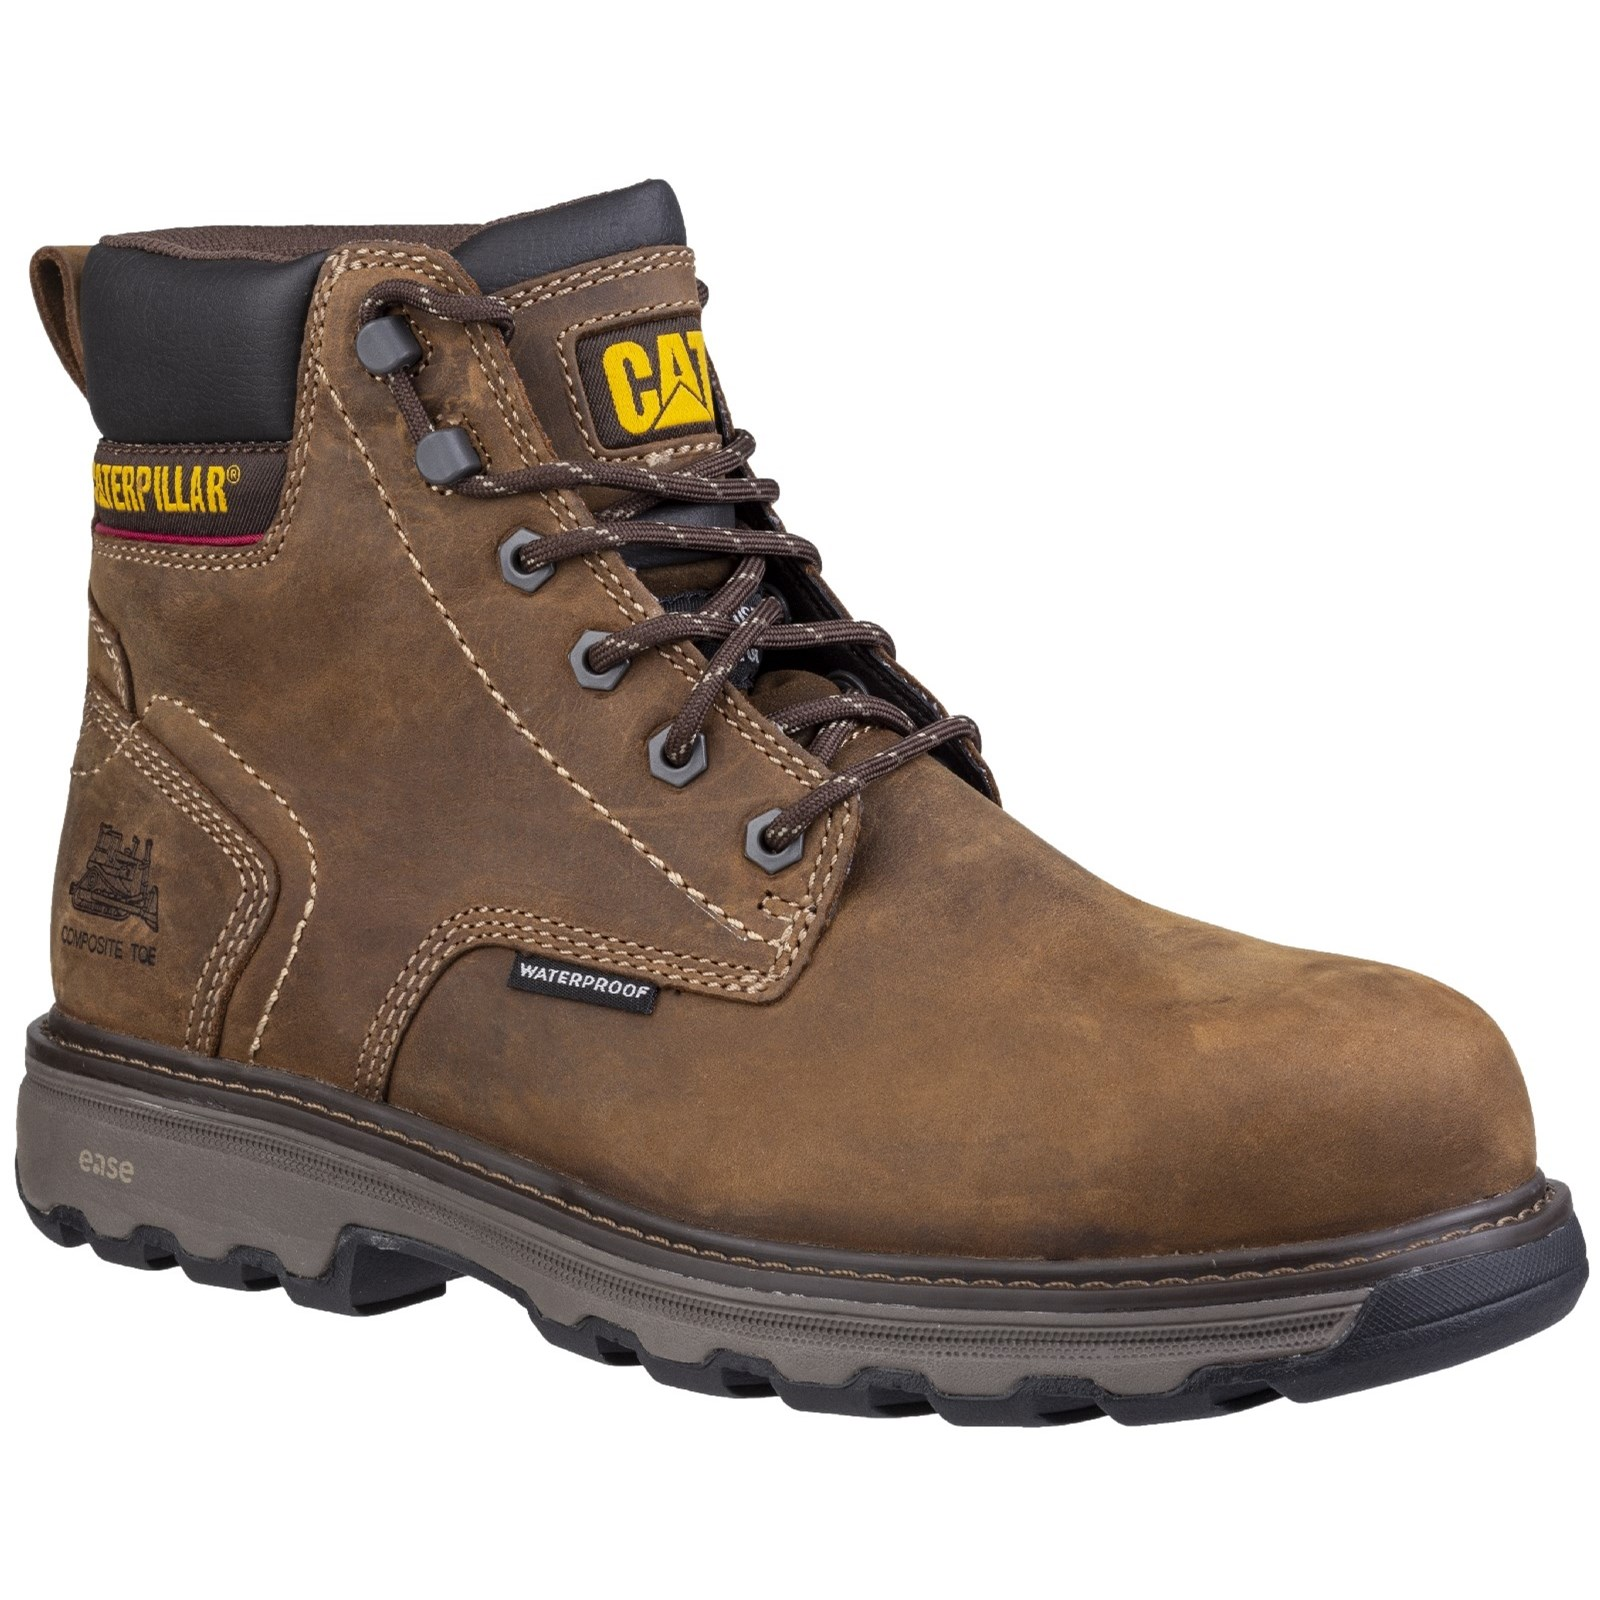 dffb0b68c67 CAT Precision Water-resistant Metal Free Toe Cap & Midsole S1-P Safety Boots